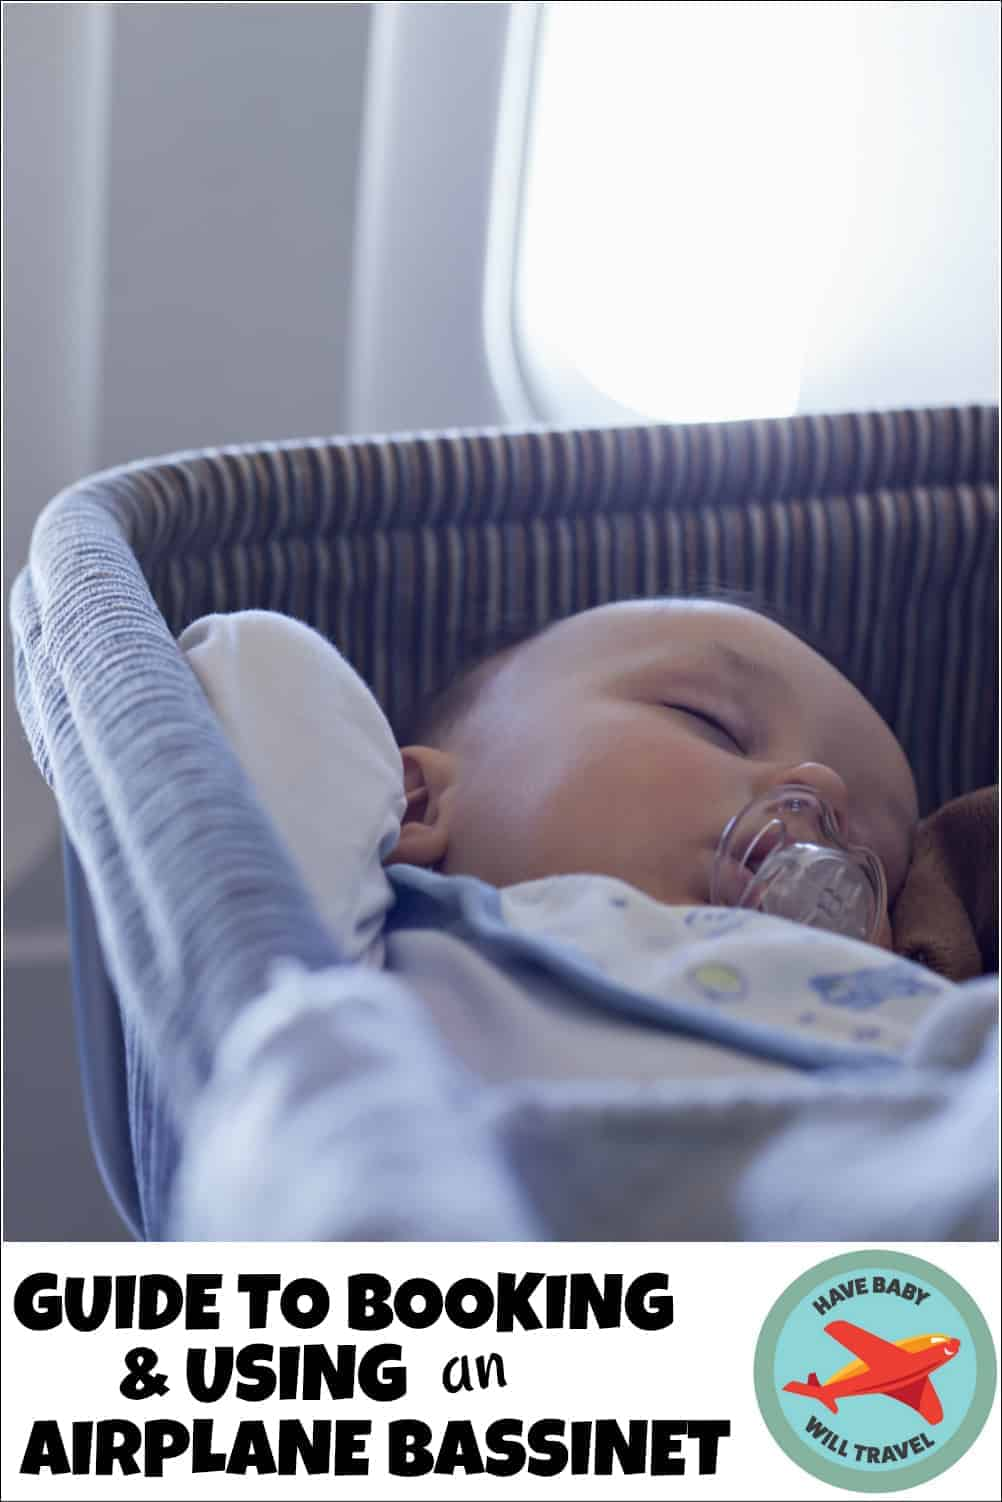 Baby Cot United Airlines Guide To Booking Using An Airplane Bassinet Have Baby